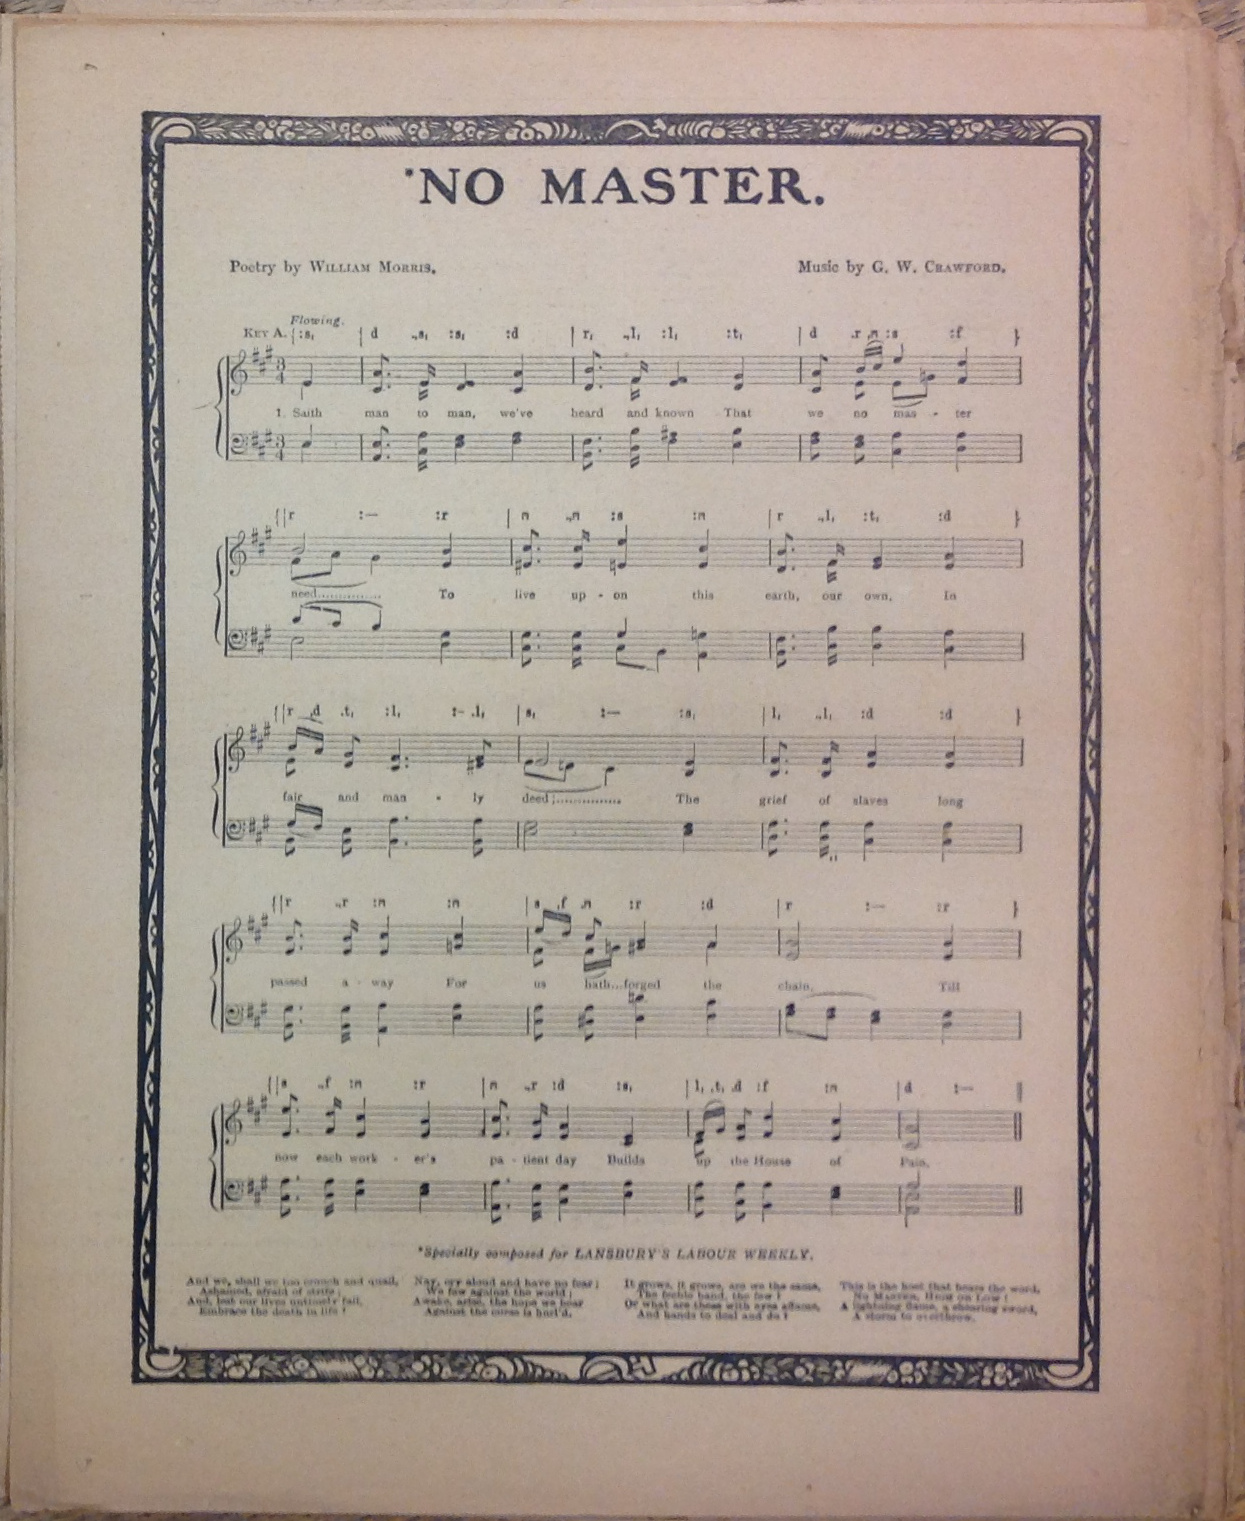 no master songsheet